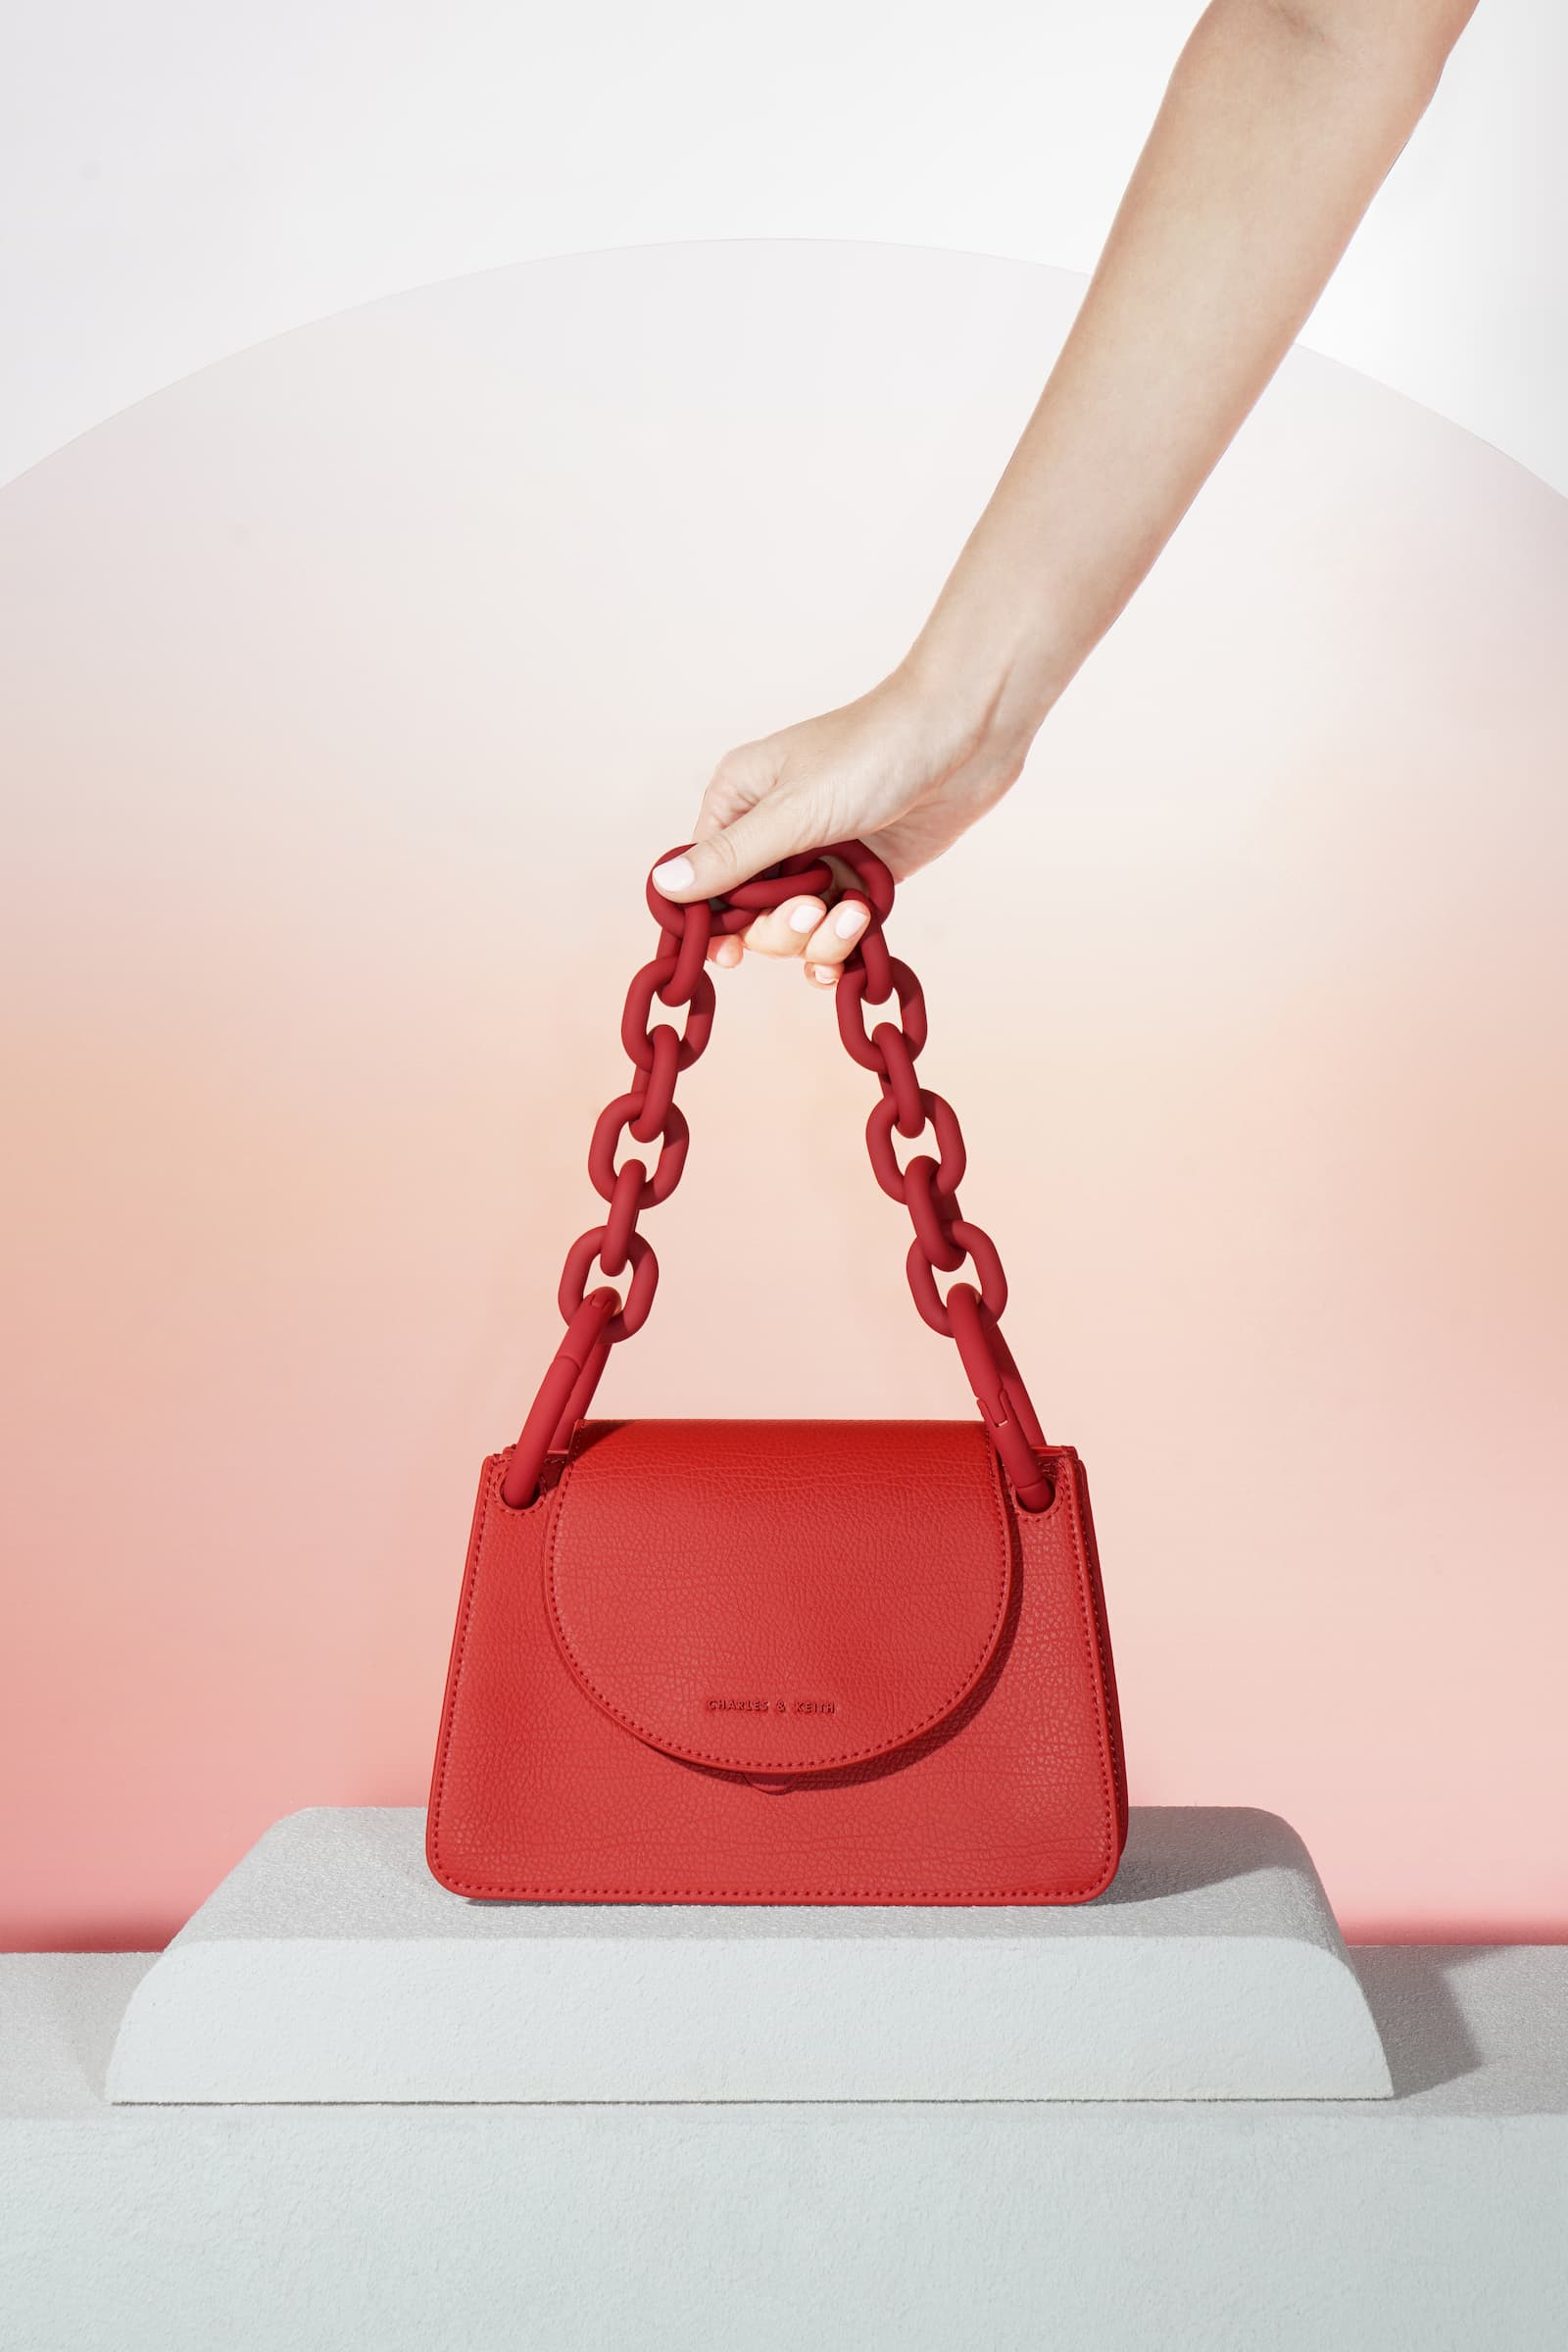 Women's chunky chain link small shoulder bag in red – CHARLES & KEITH